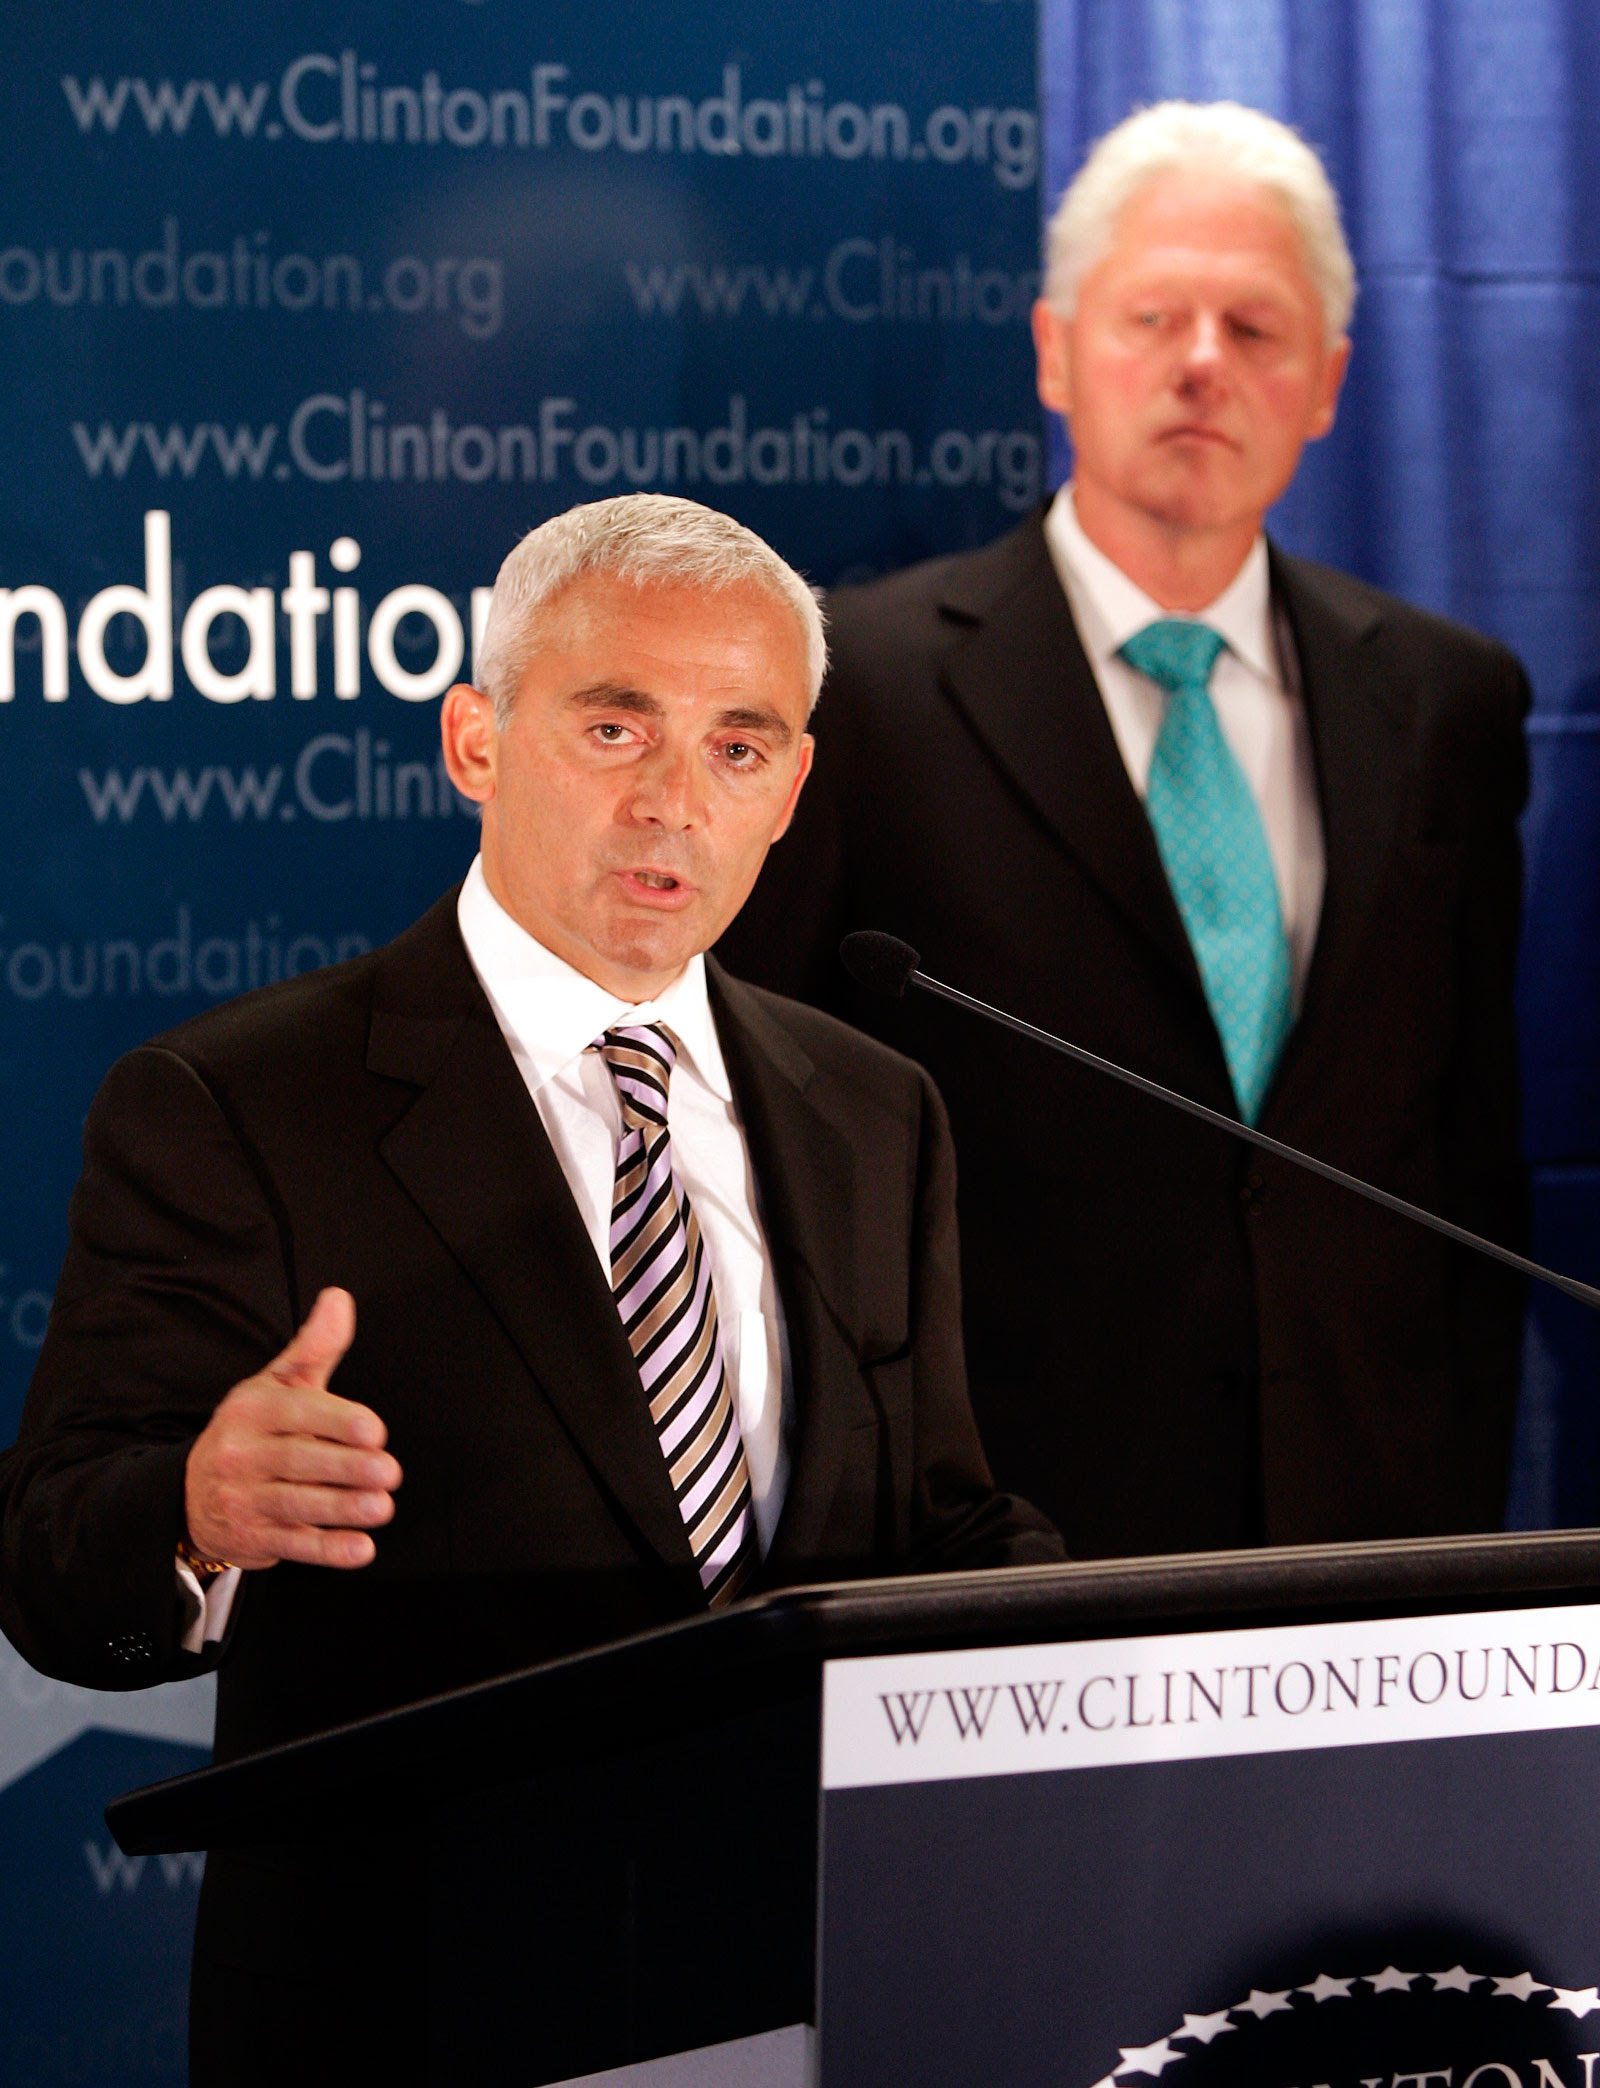 Frank Giustra speaks as former President Bill Clinton looks on during a press conference announcing the Clinton Giustra Sustainable Growth Initiative, New York, June 21, 2007